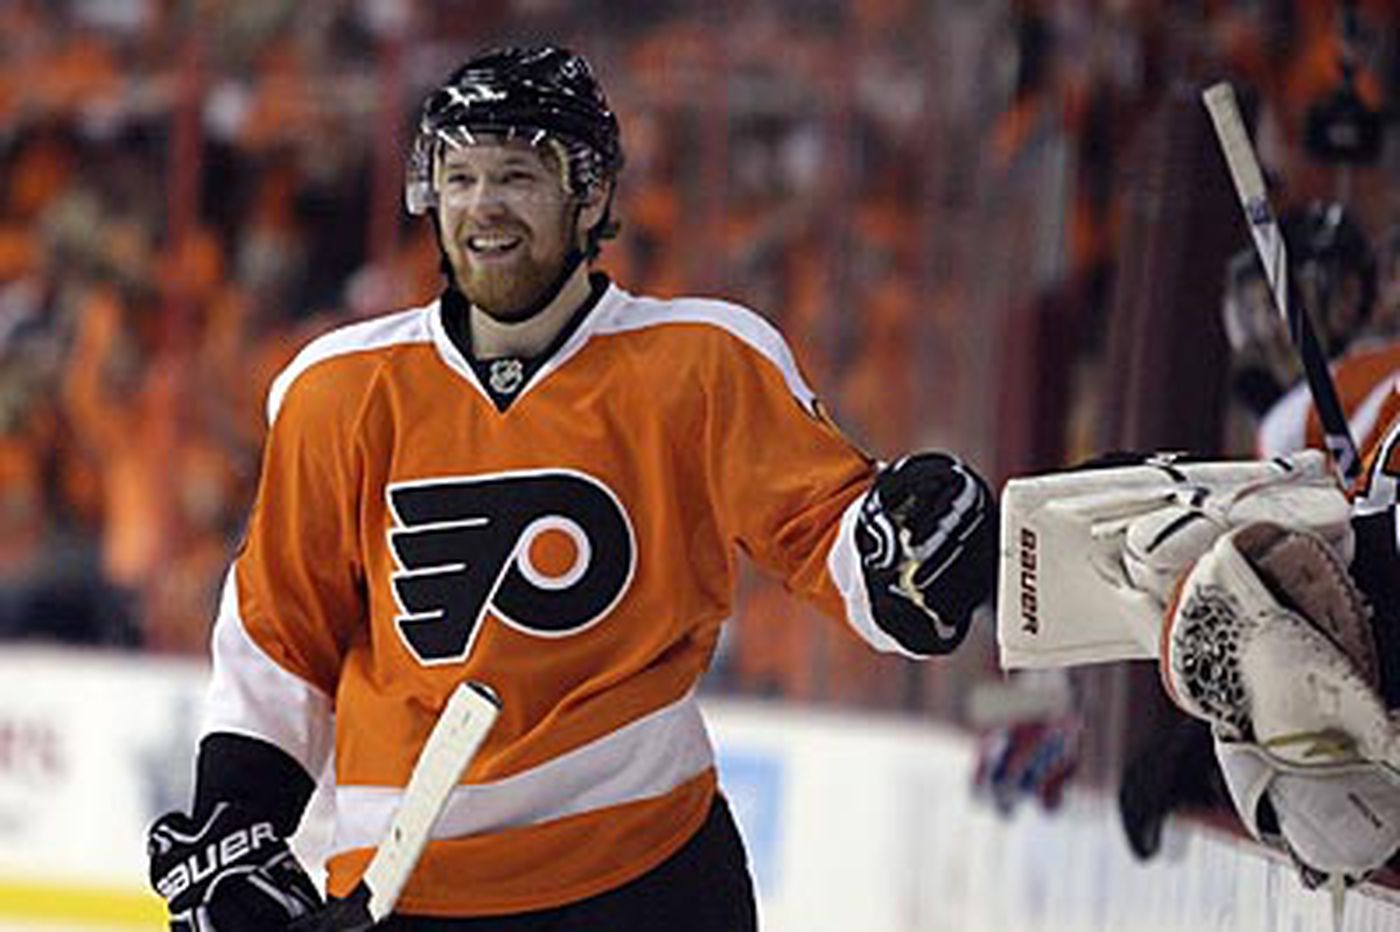 Flyers forward Giroux steps up his game